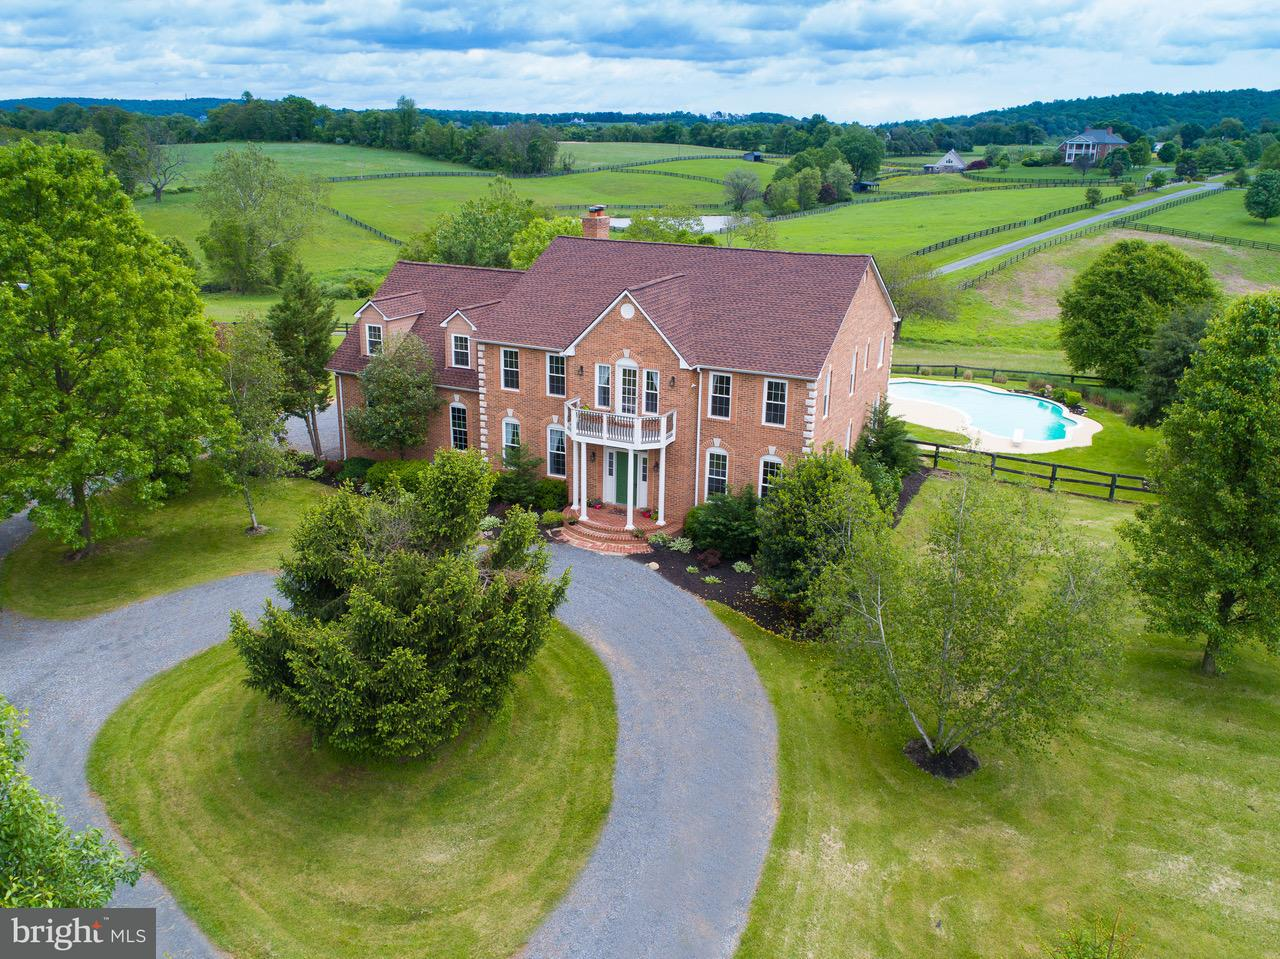 Single Family Home for Sale at 16050 Hamilton Station Road 16050 Hamilton Station Road Waterford, Virginia 20197 United States